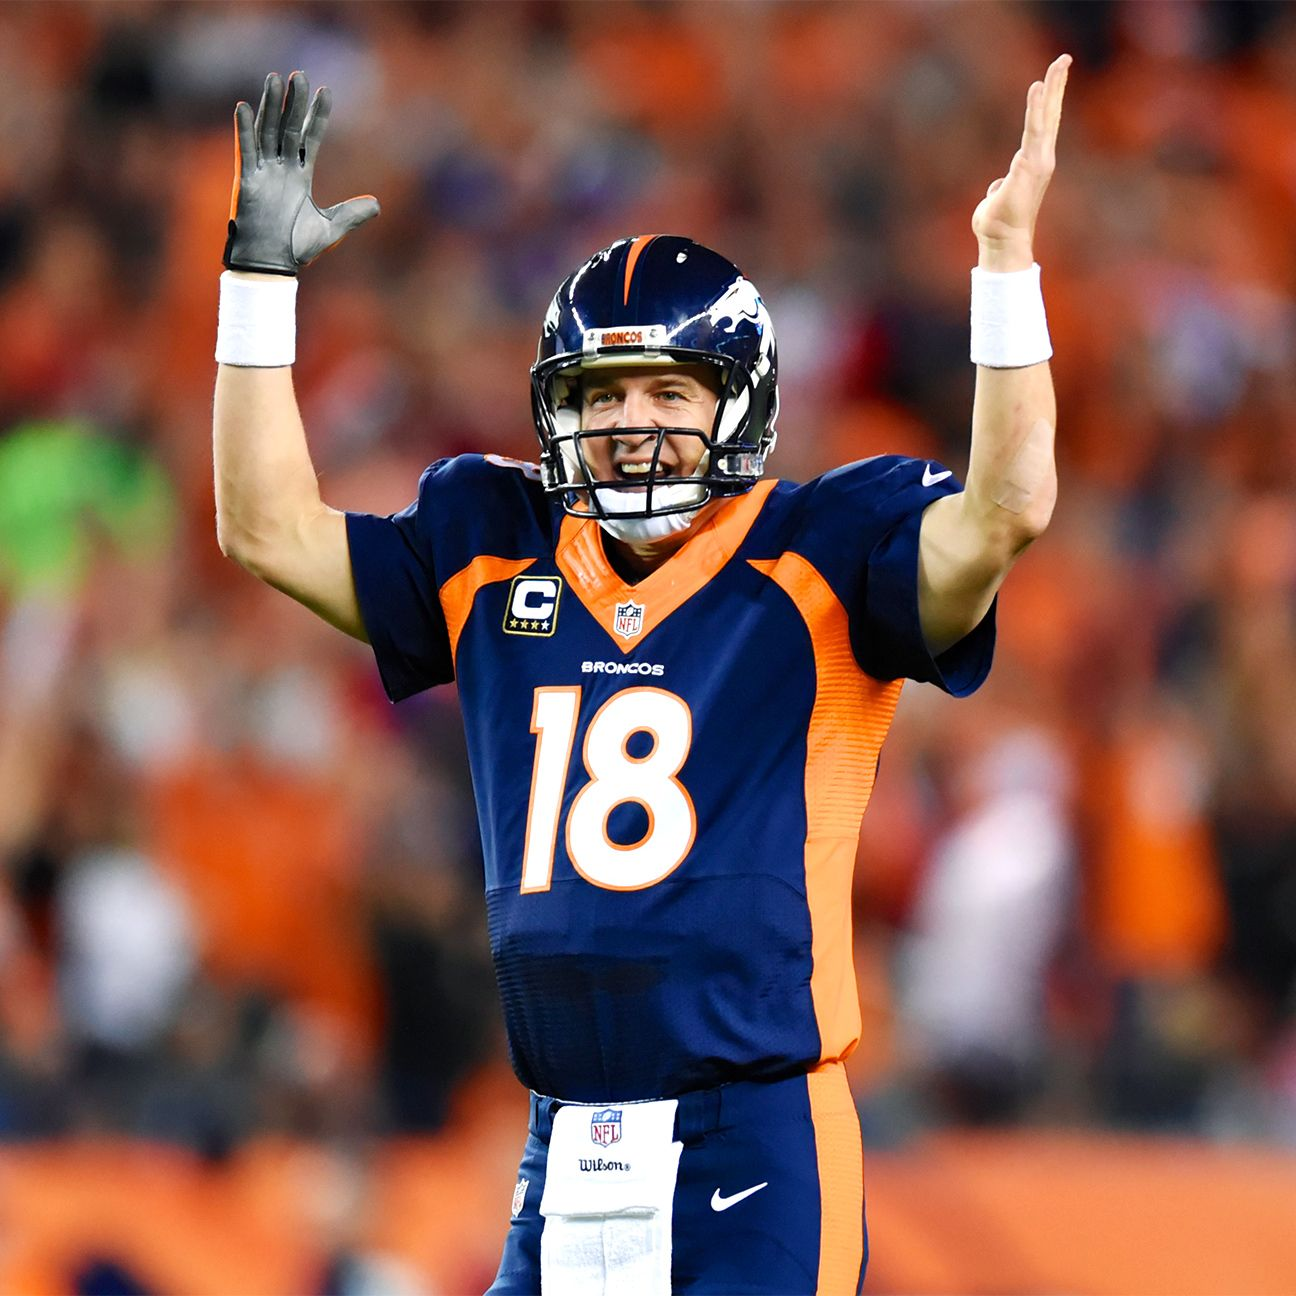 Peyton sends gift to family of fan killed in crash (With